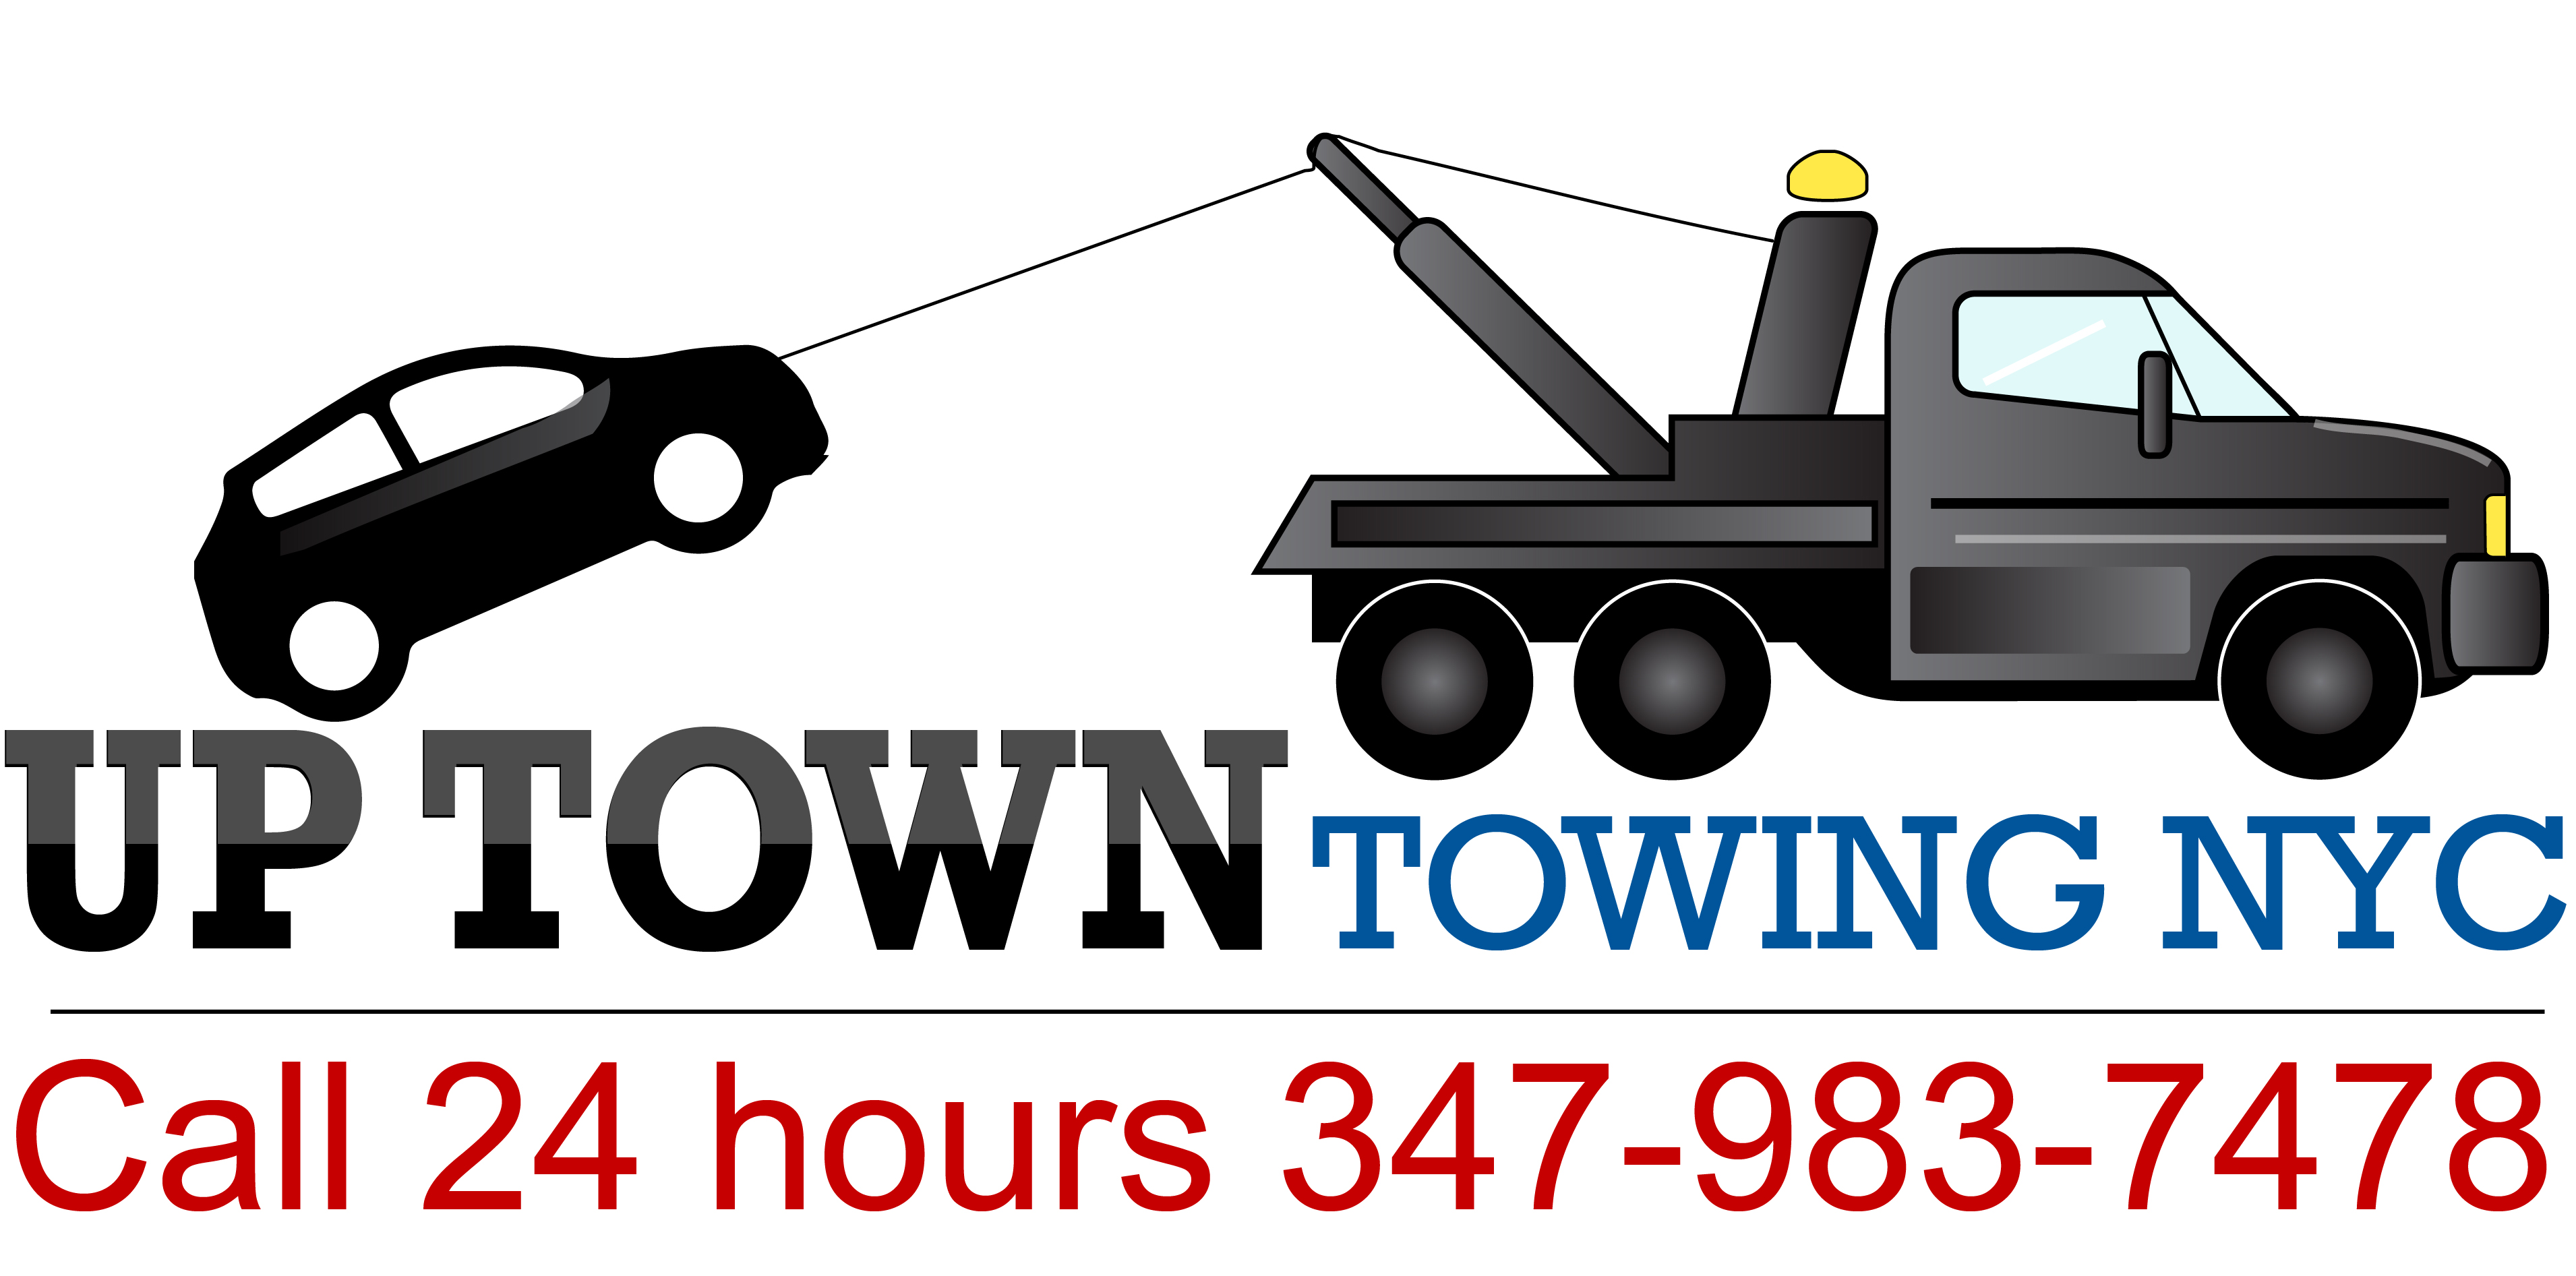 Uptown Towing NYC